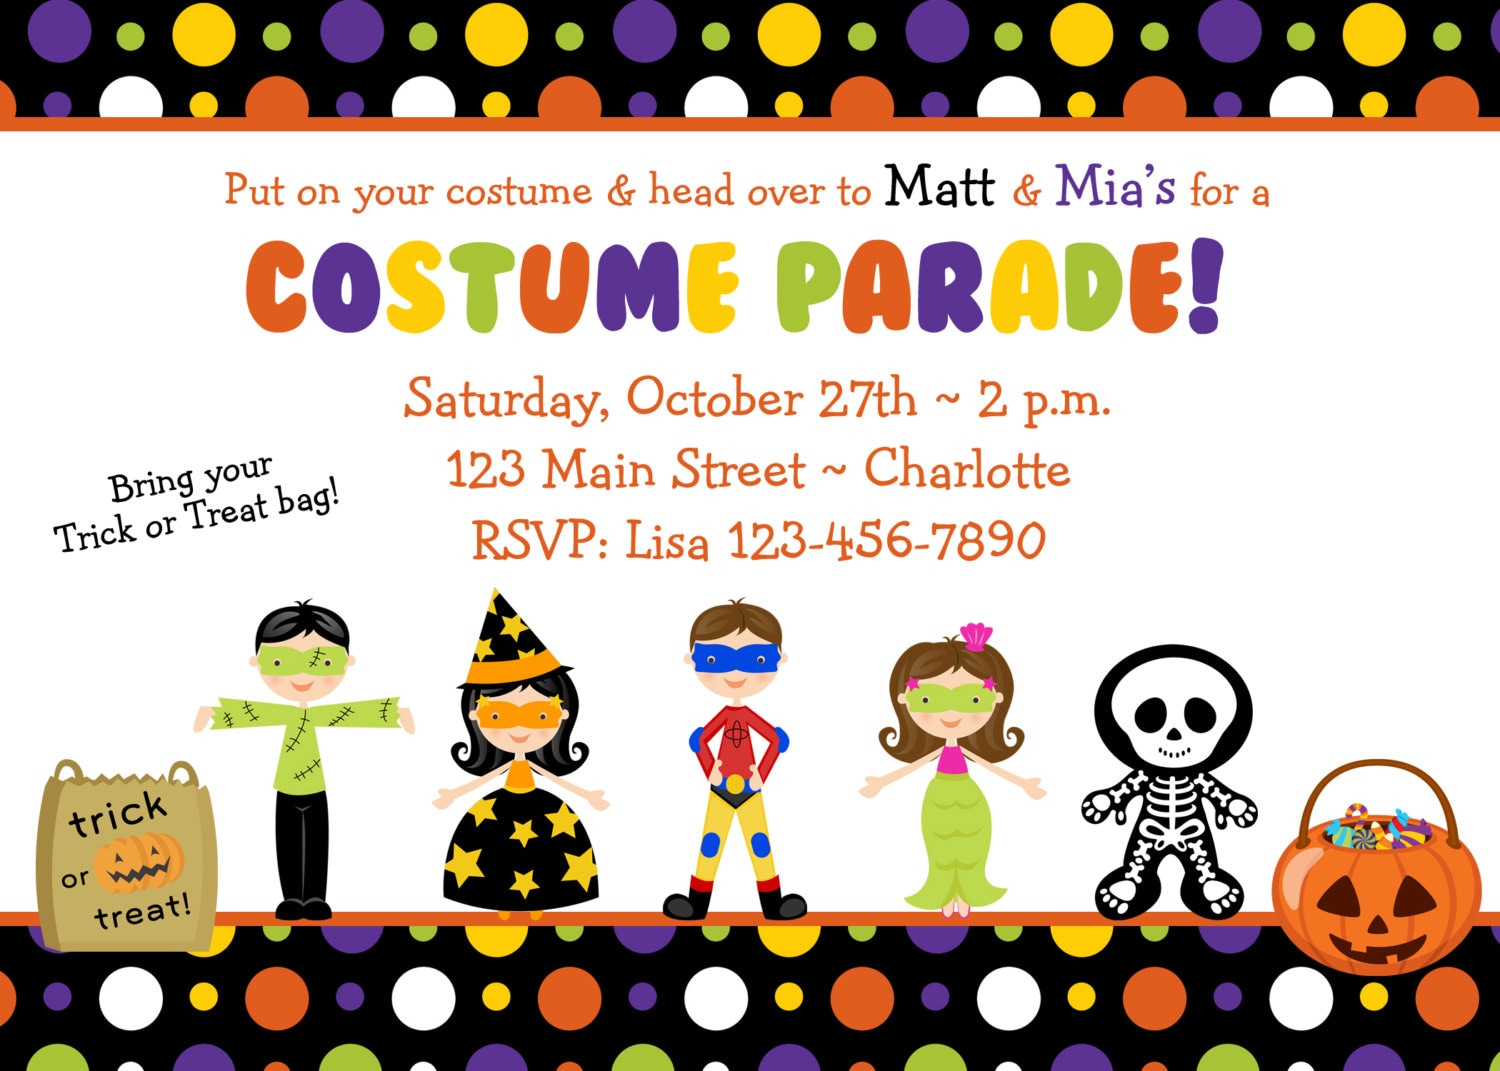 Halloween costume party invitation Costume Parade Party